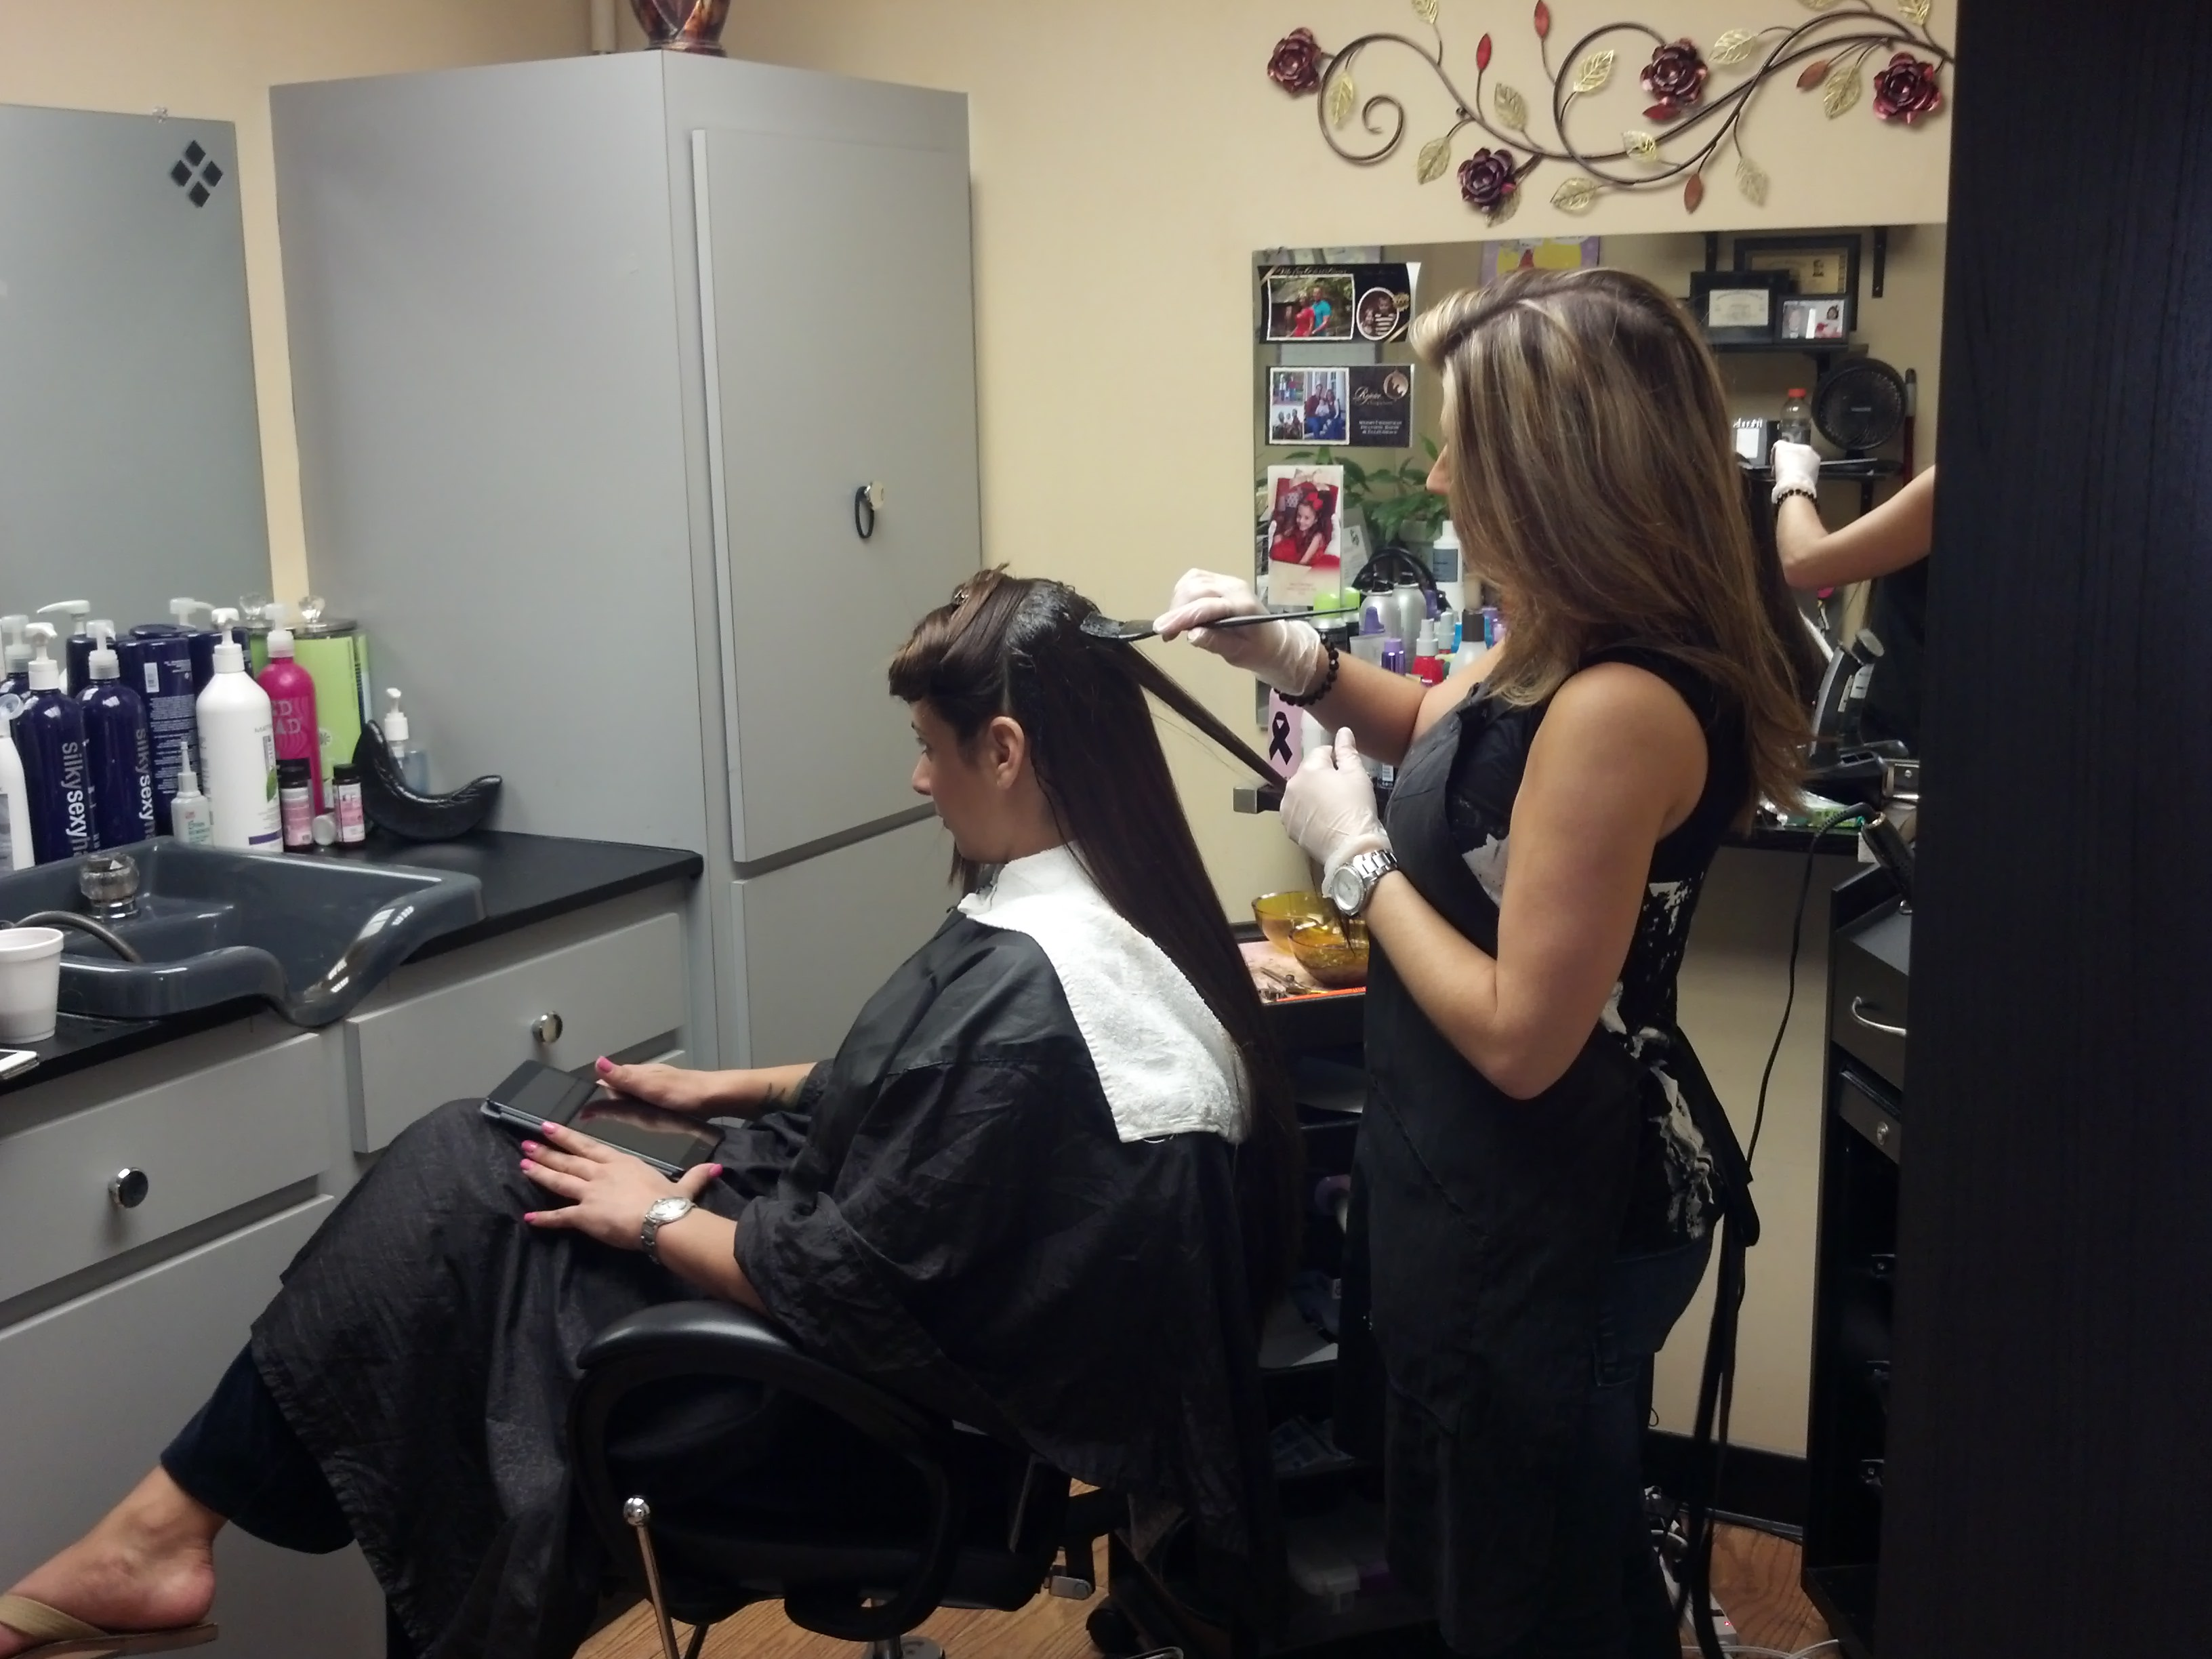 Best Hair Stylists : Best Hair Salon Gastonia Stylist 10 - Burton Hills Family Hair ...